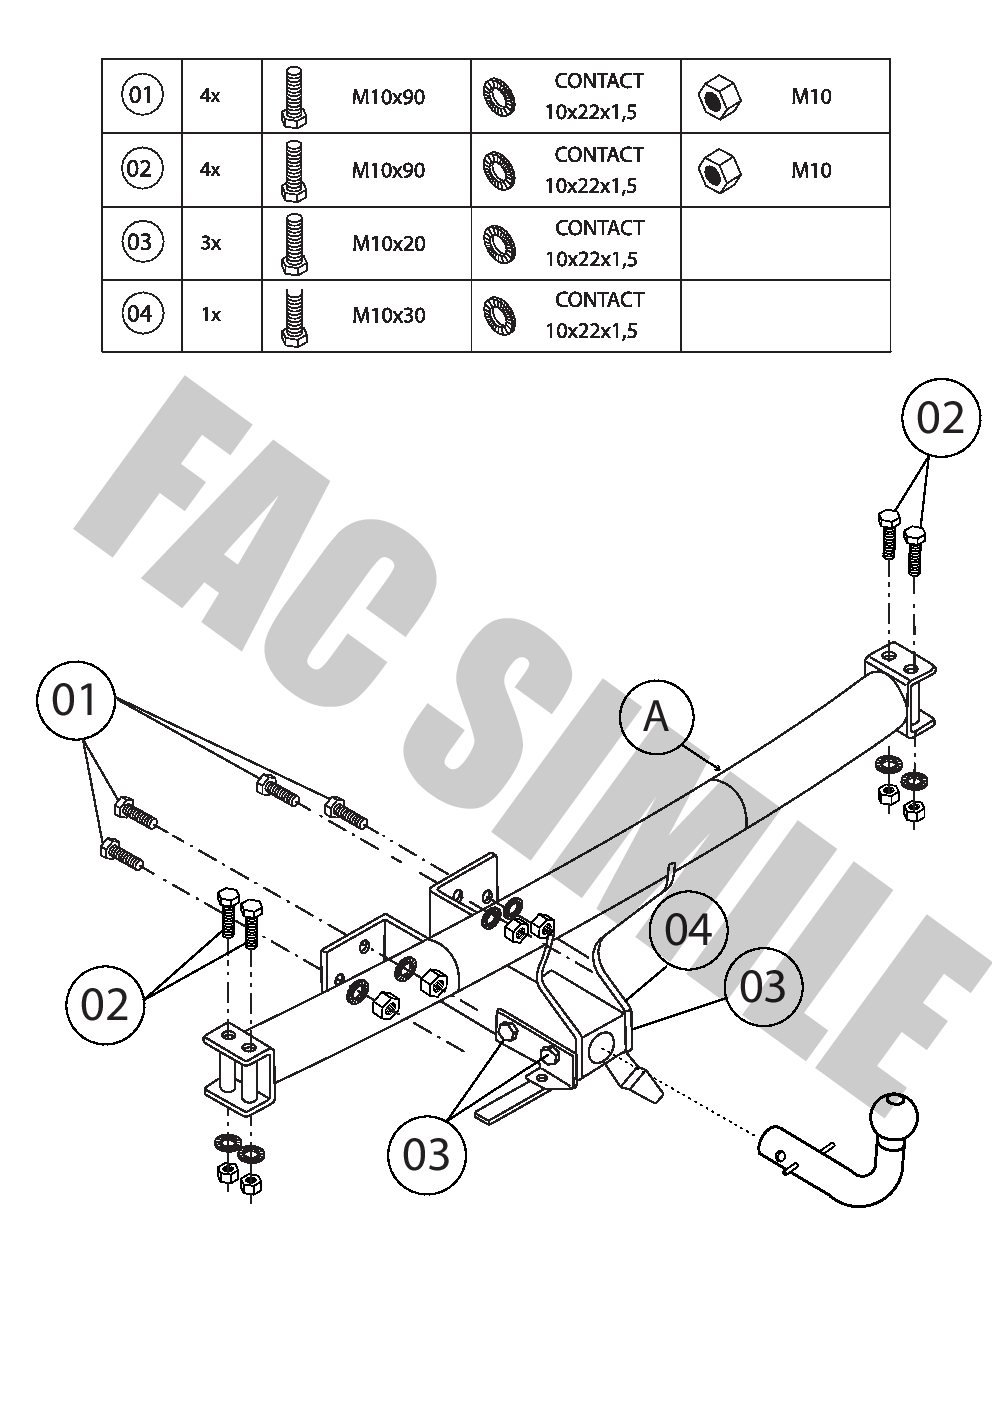 Detachable Towbar 13p C2 Wiring Kit for Rover RANGE ROVER